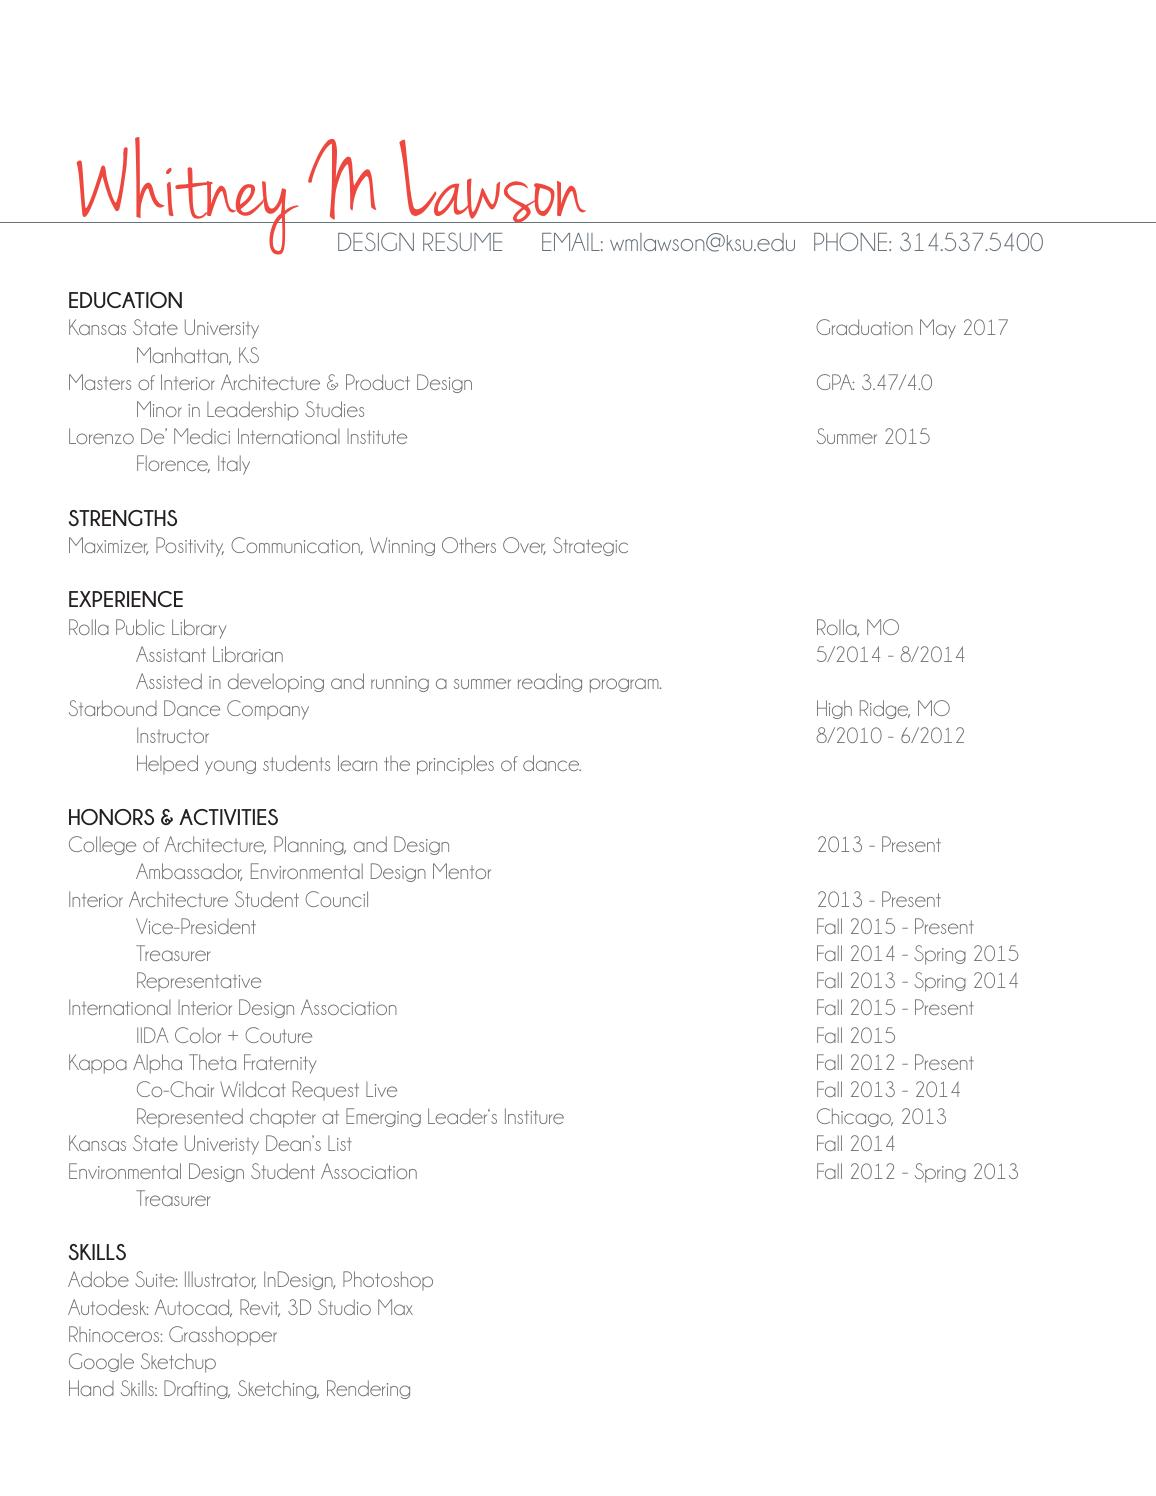 Interior Architecture Product Design Resume By Whitney Marie Lawson